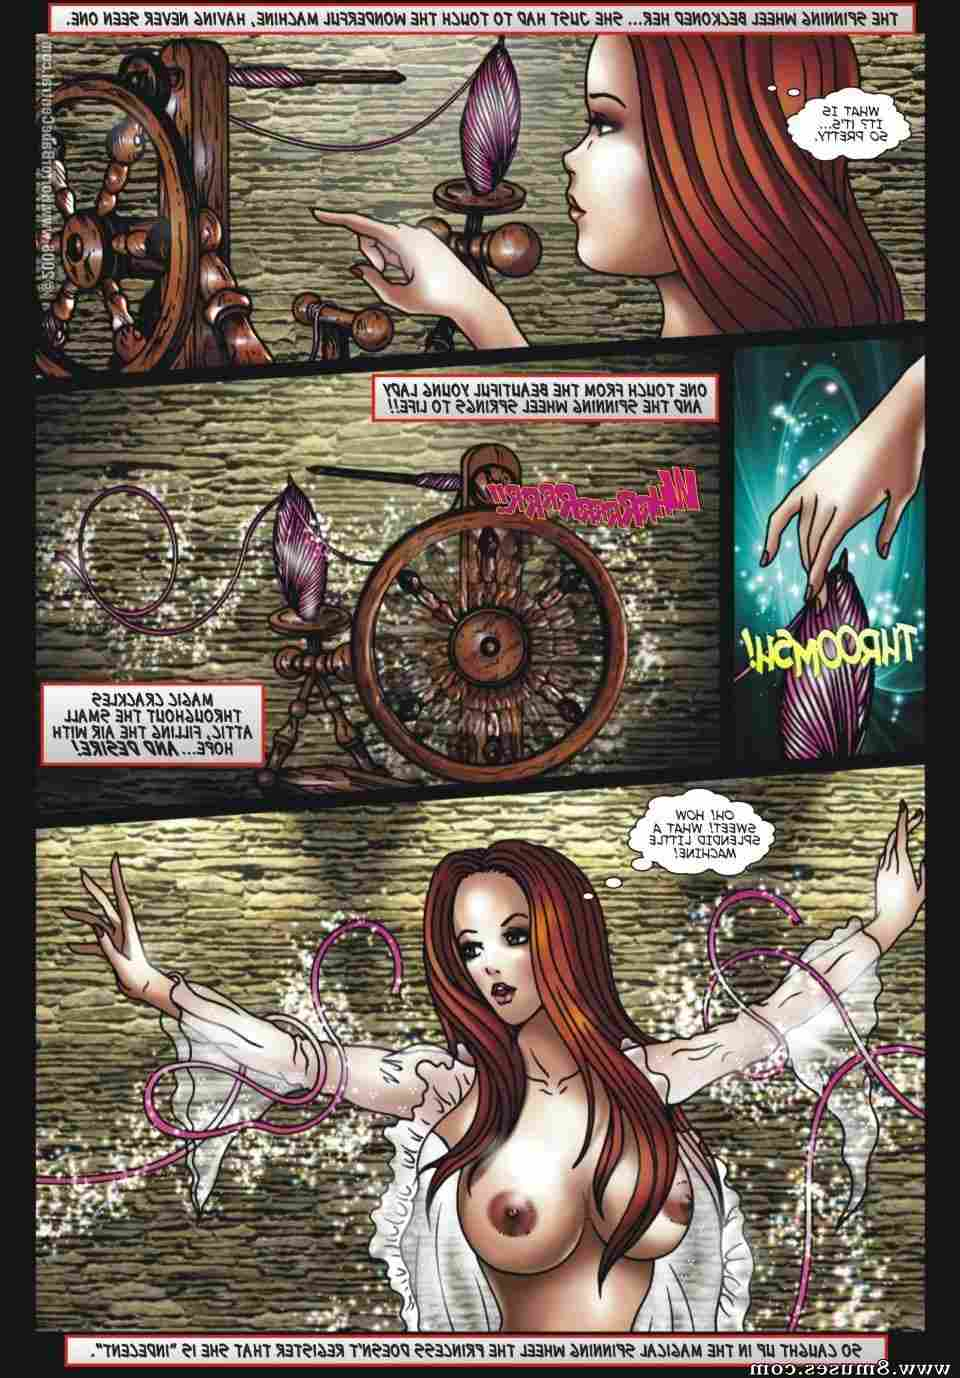 Central-Comics/Horror-Babe-Central/Fable-of-Fright Fable_of_Fright__8muses_-_Sex_and_Porn_Comics_63.jpg